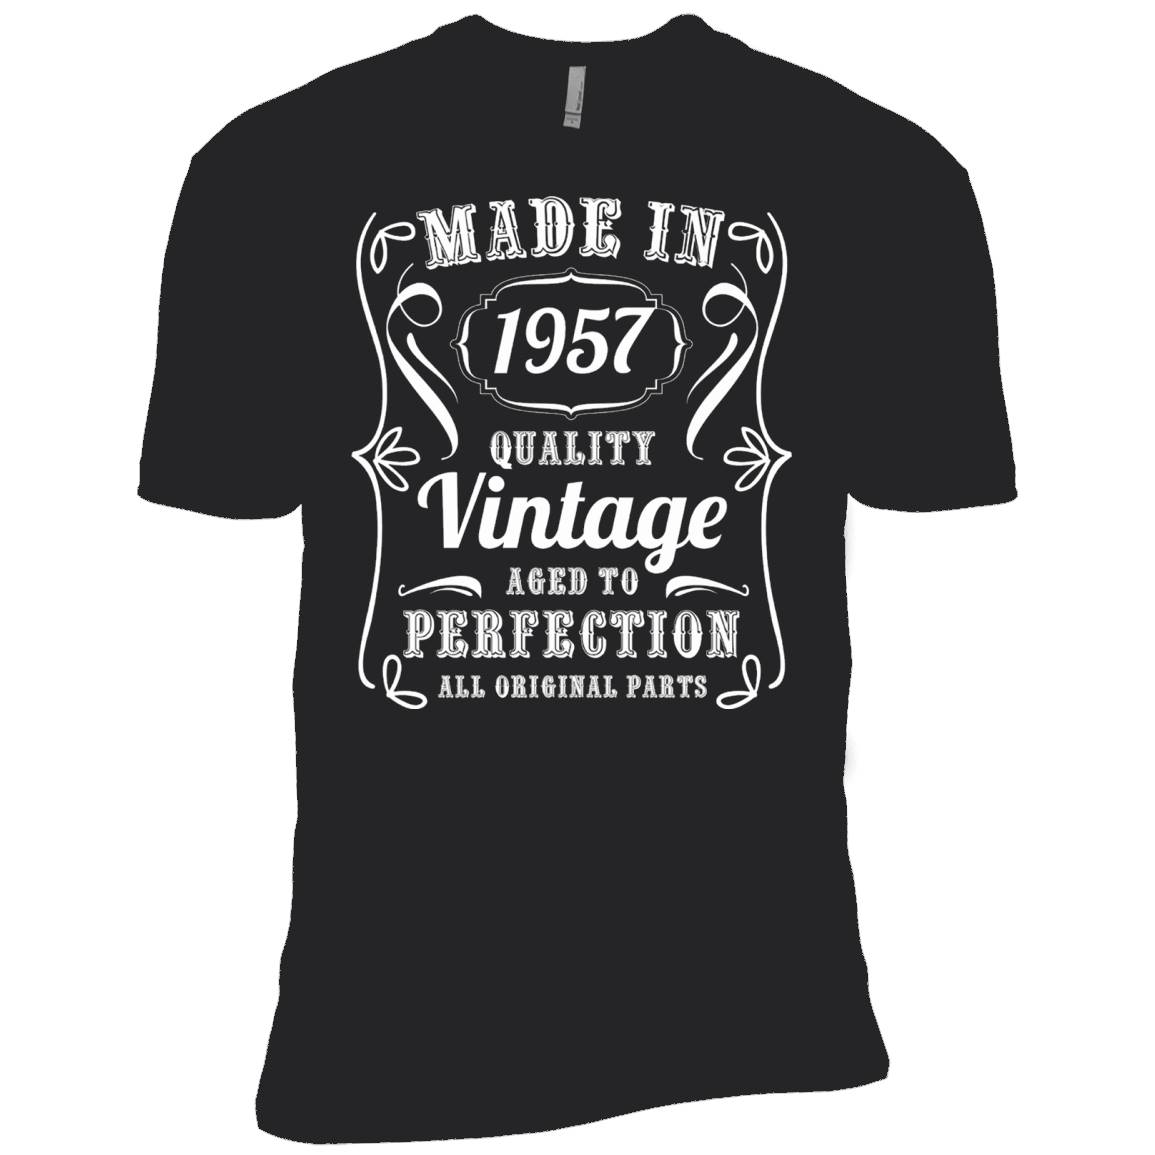 Made In 1957 Quality Vintage Aged To Perfection T-shirt – T-Shirt